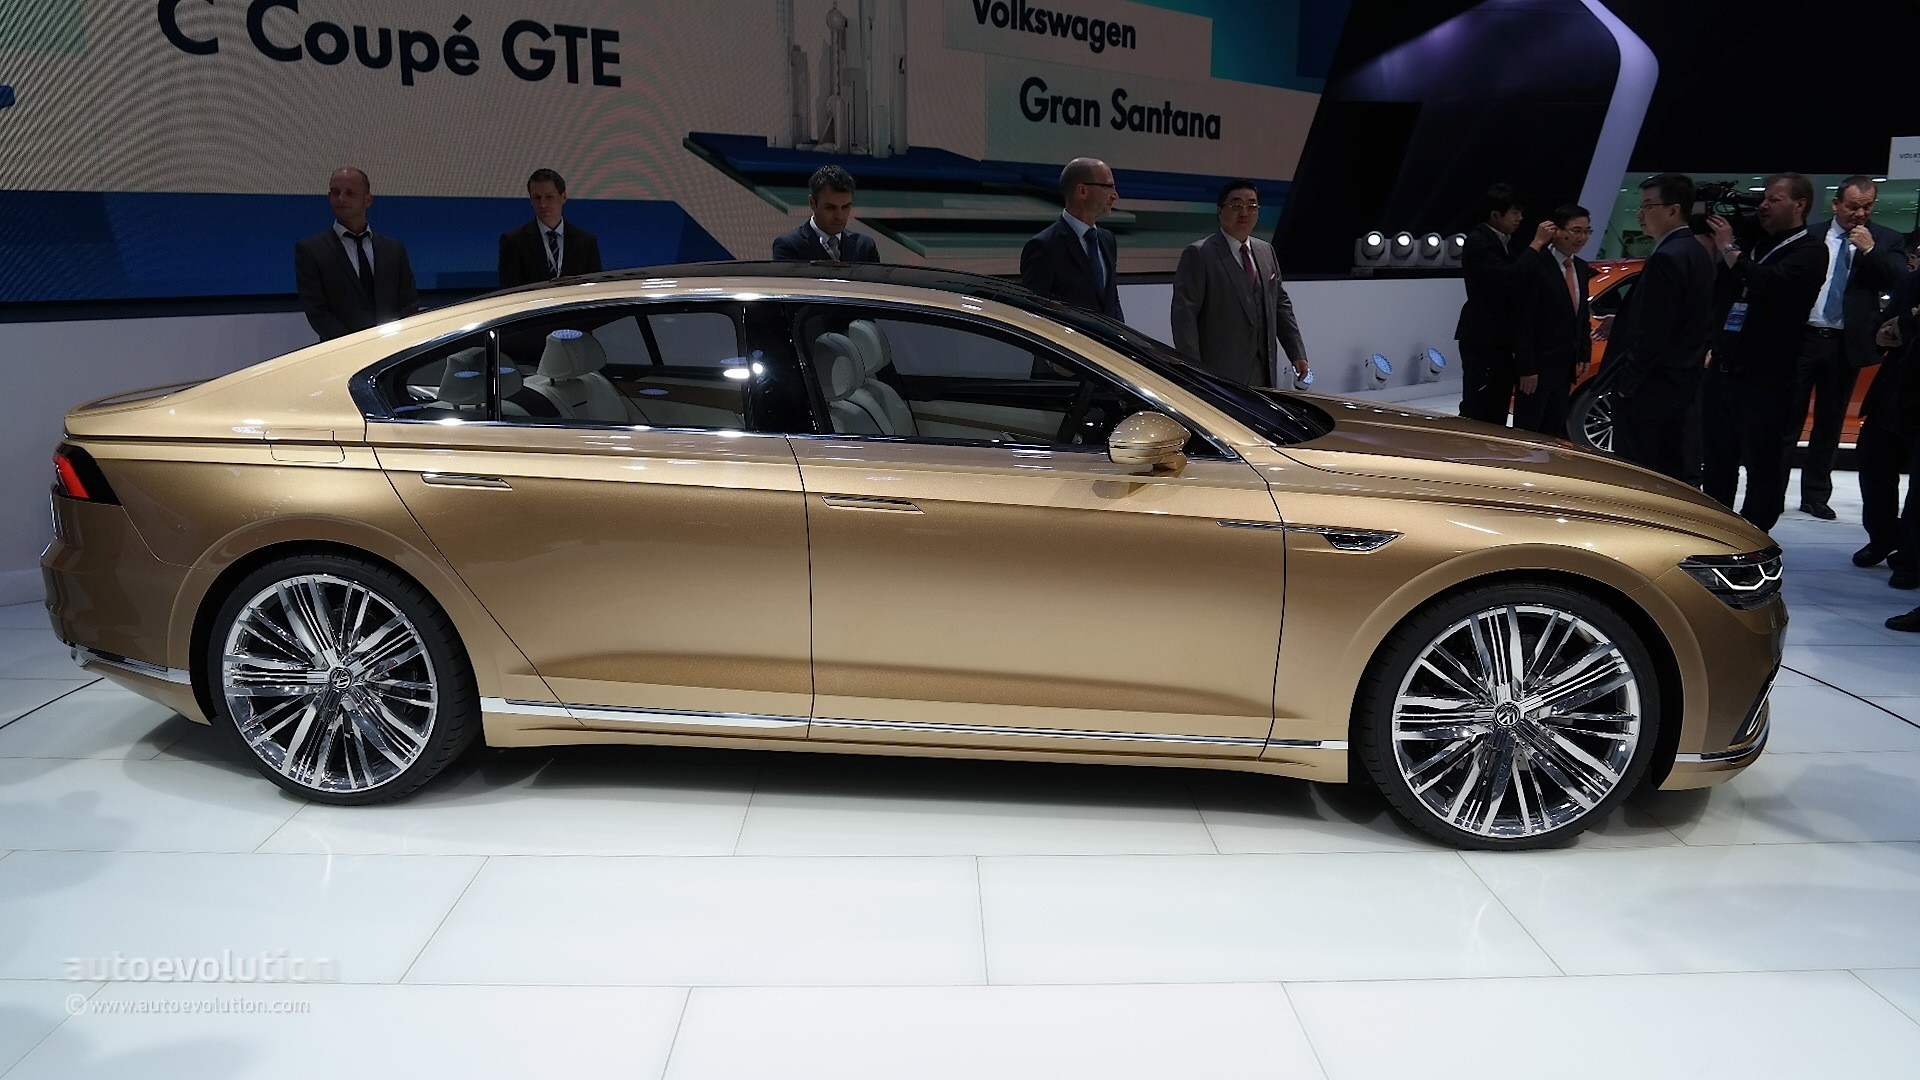 Volkswagen C Coupe Gte Concept Will S Production Model For China